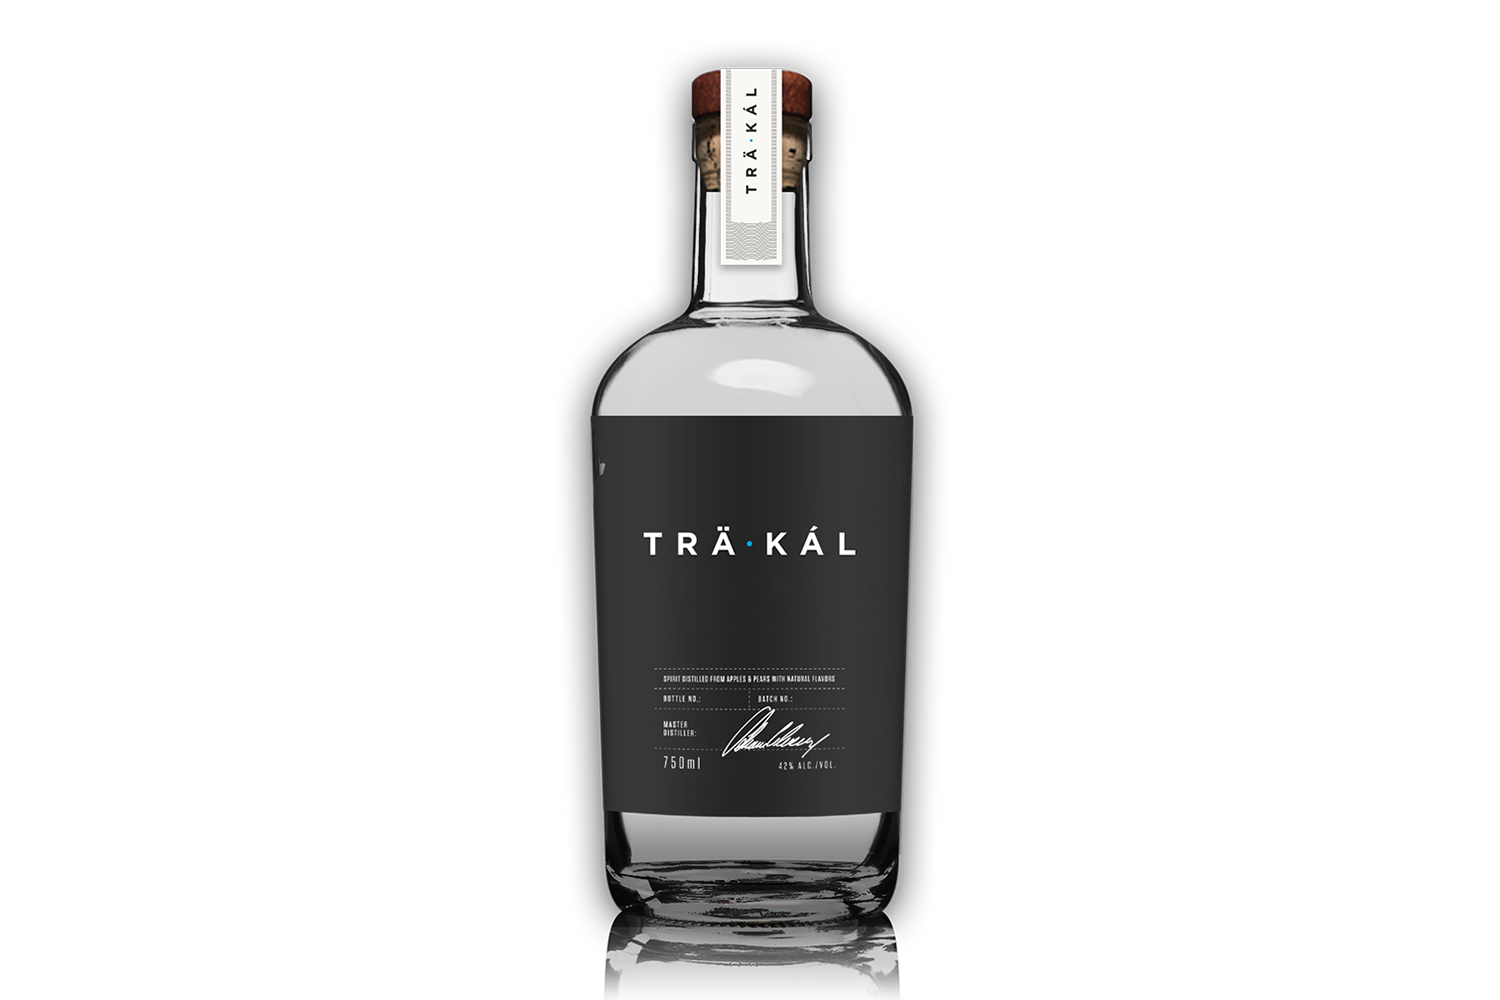 Trakal from Chile